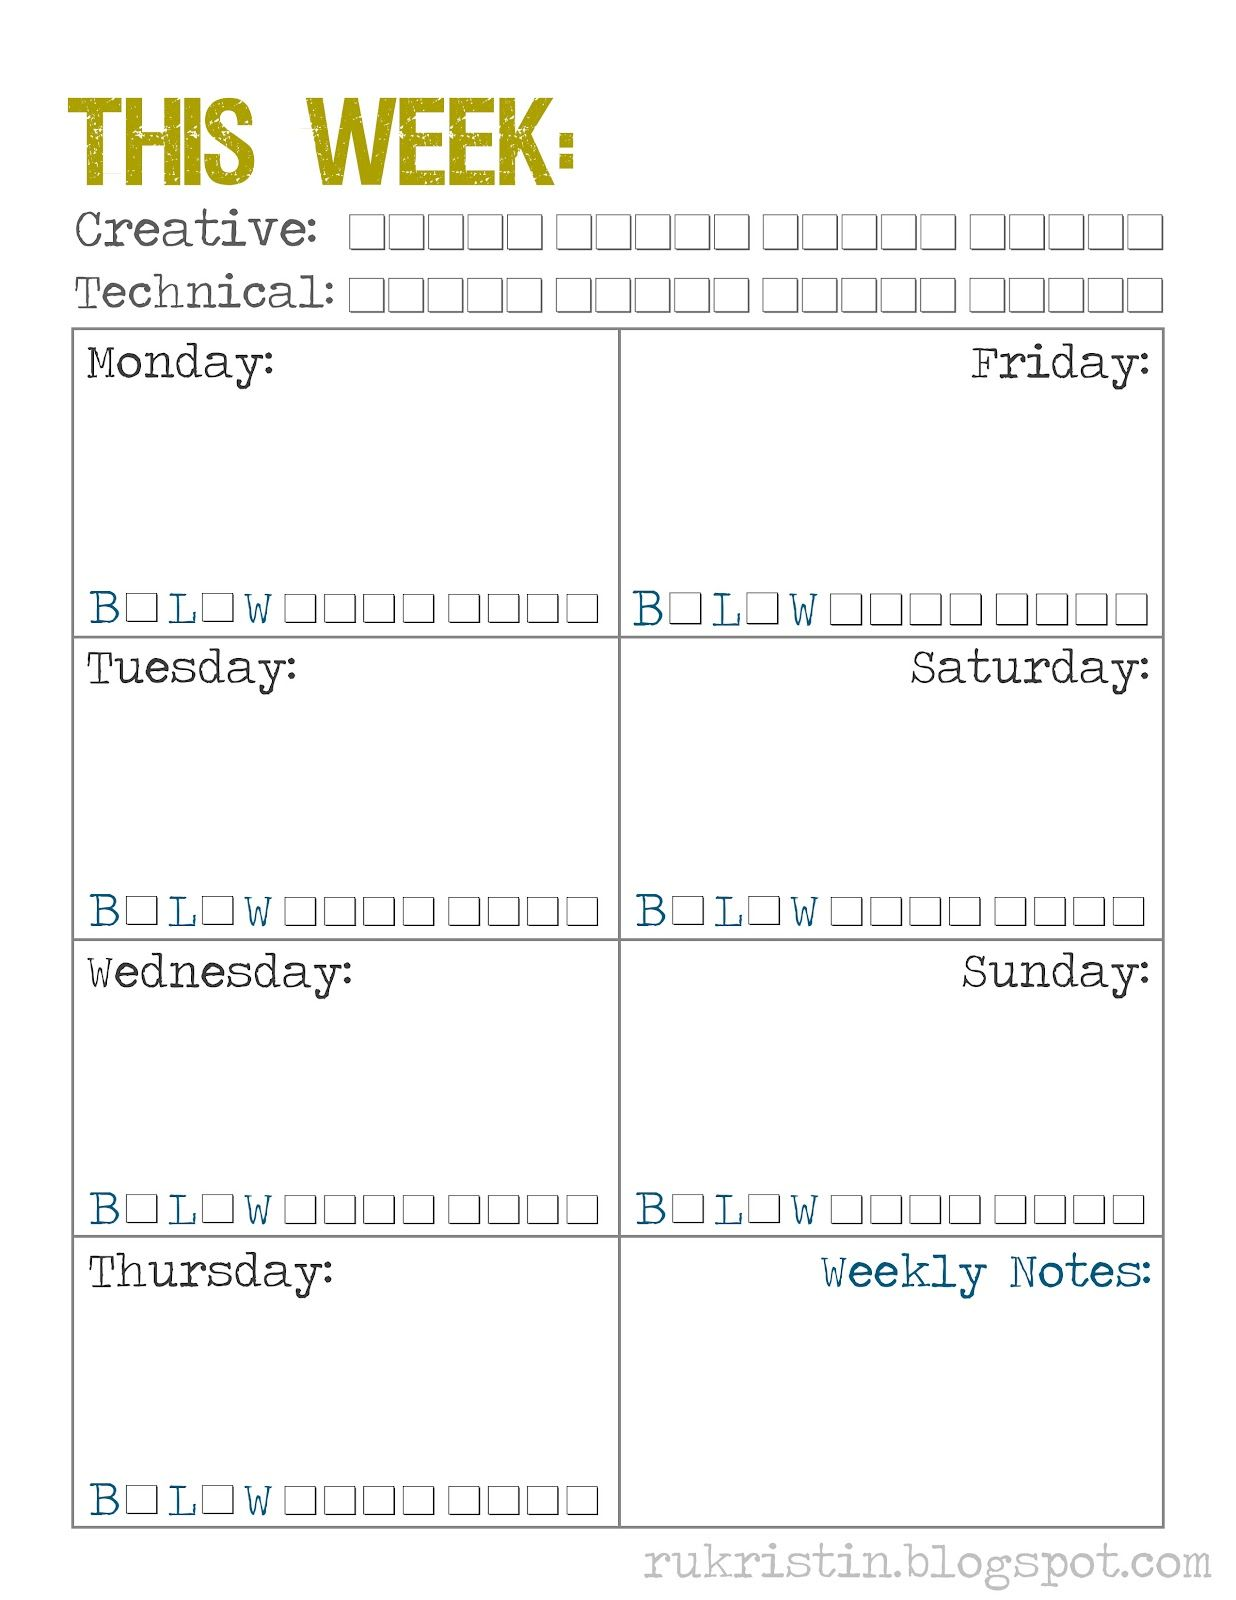 Free Printable Weekly Calendar Template With Great Ideas For Time